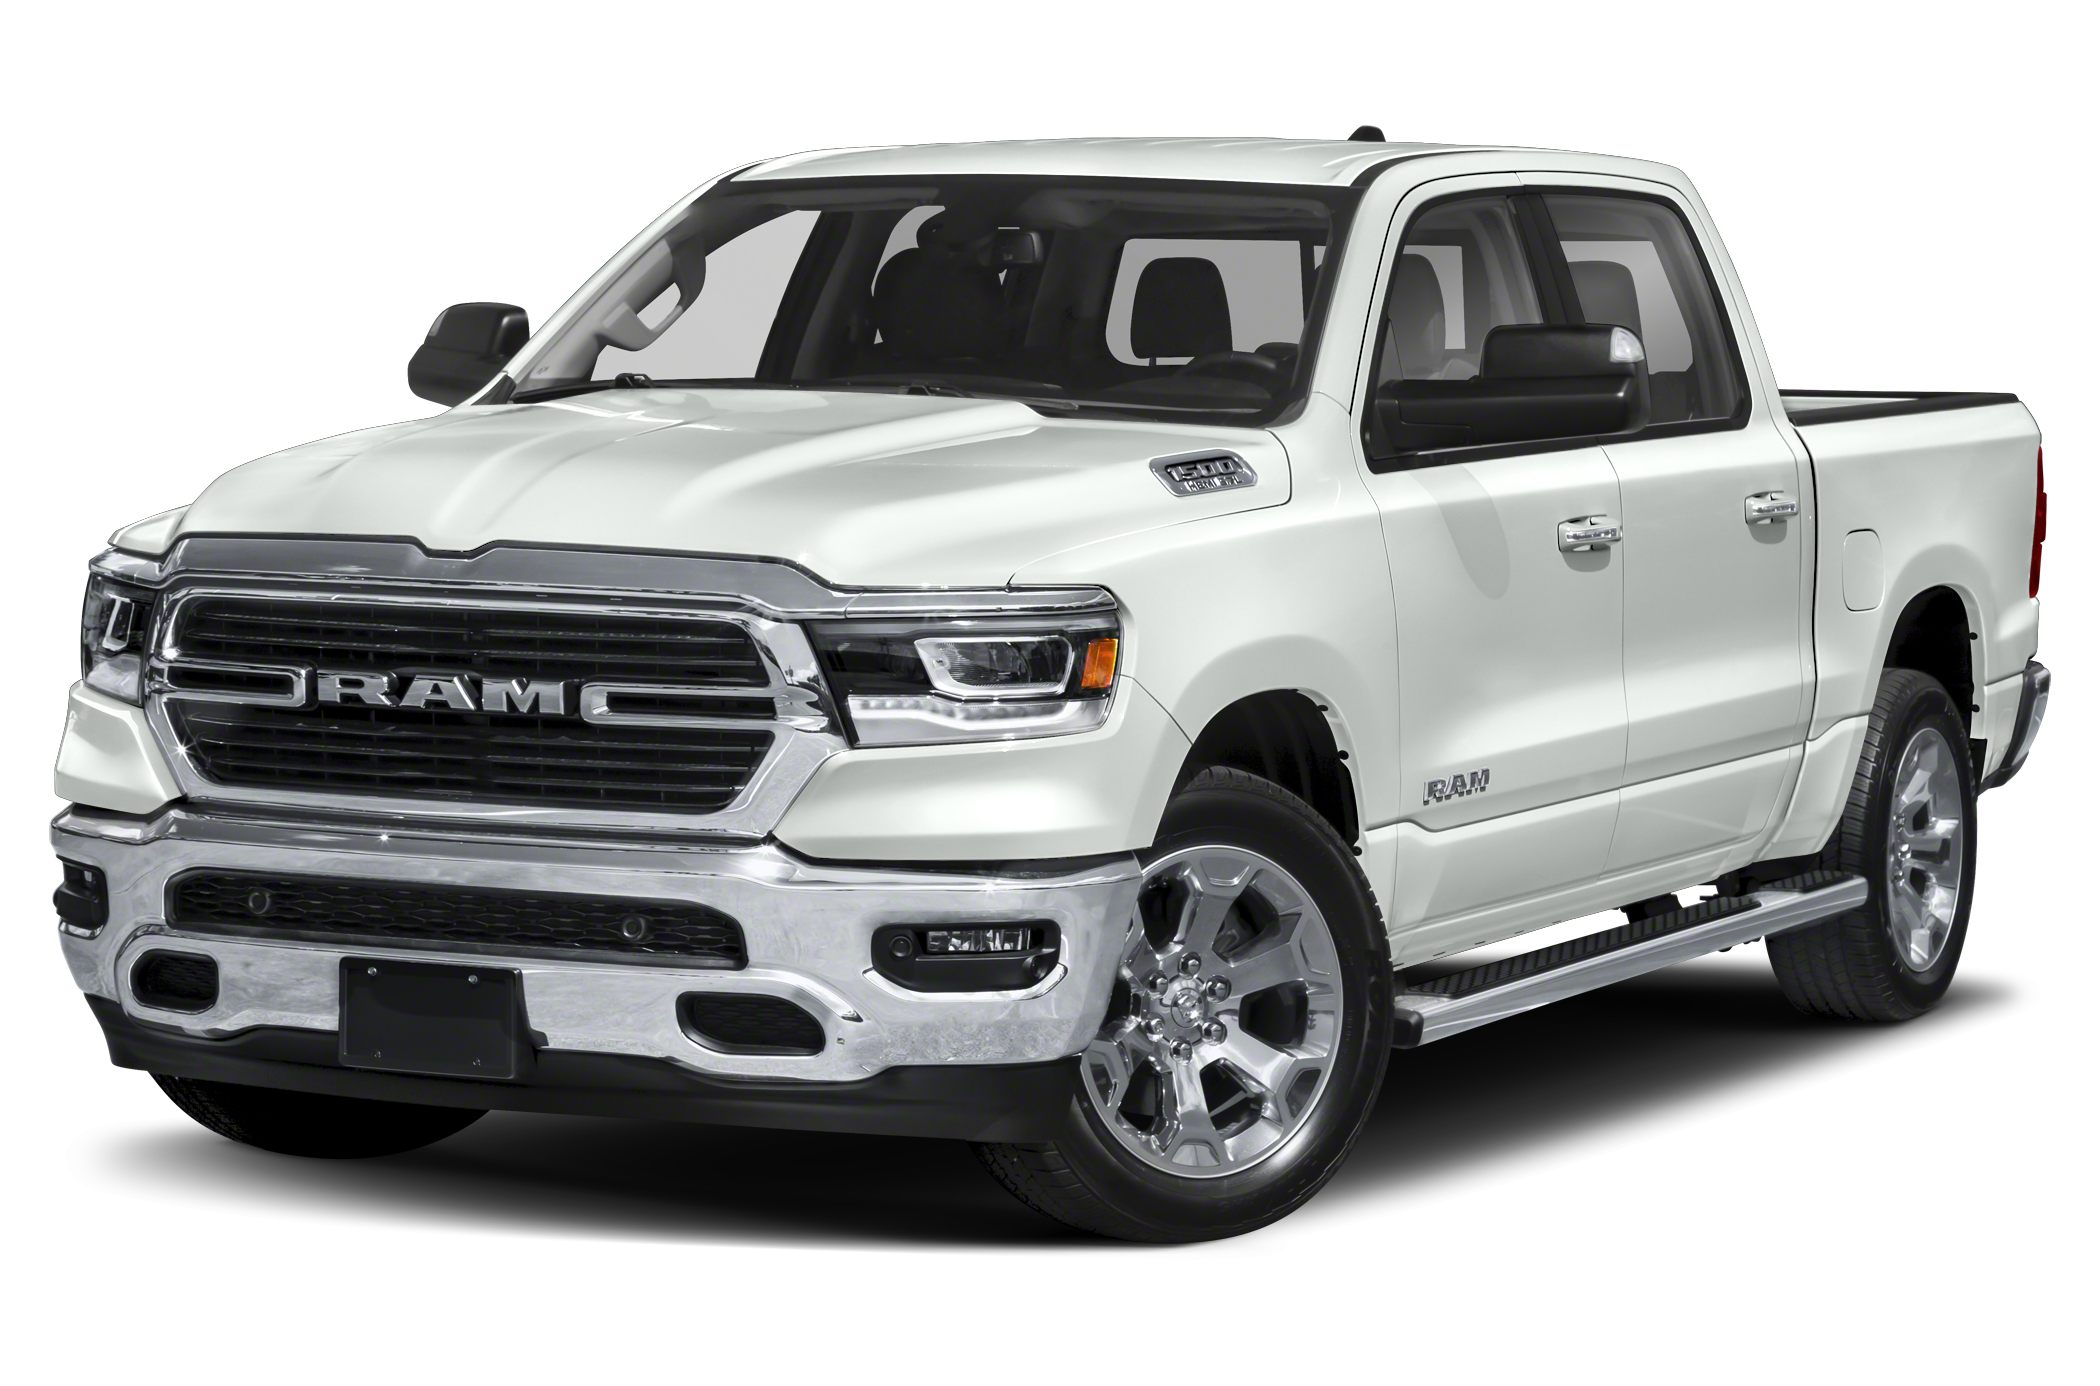 2021 Ram 1500 Big Horn Lone Star 4x4 Crew Cab 153 5 In Wb Specs And Prices